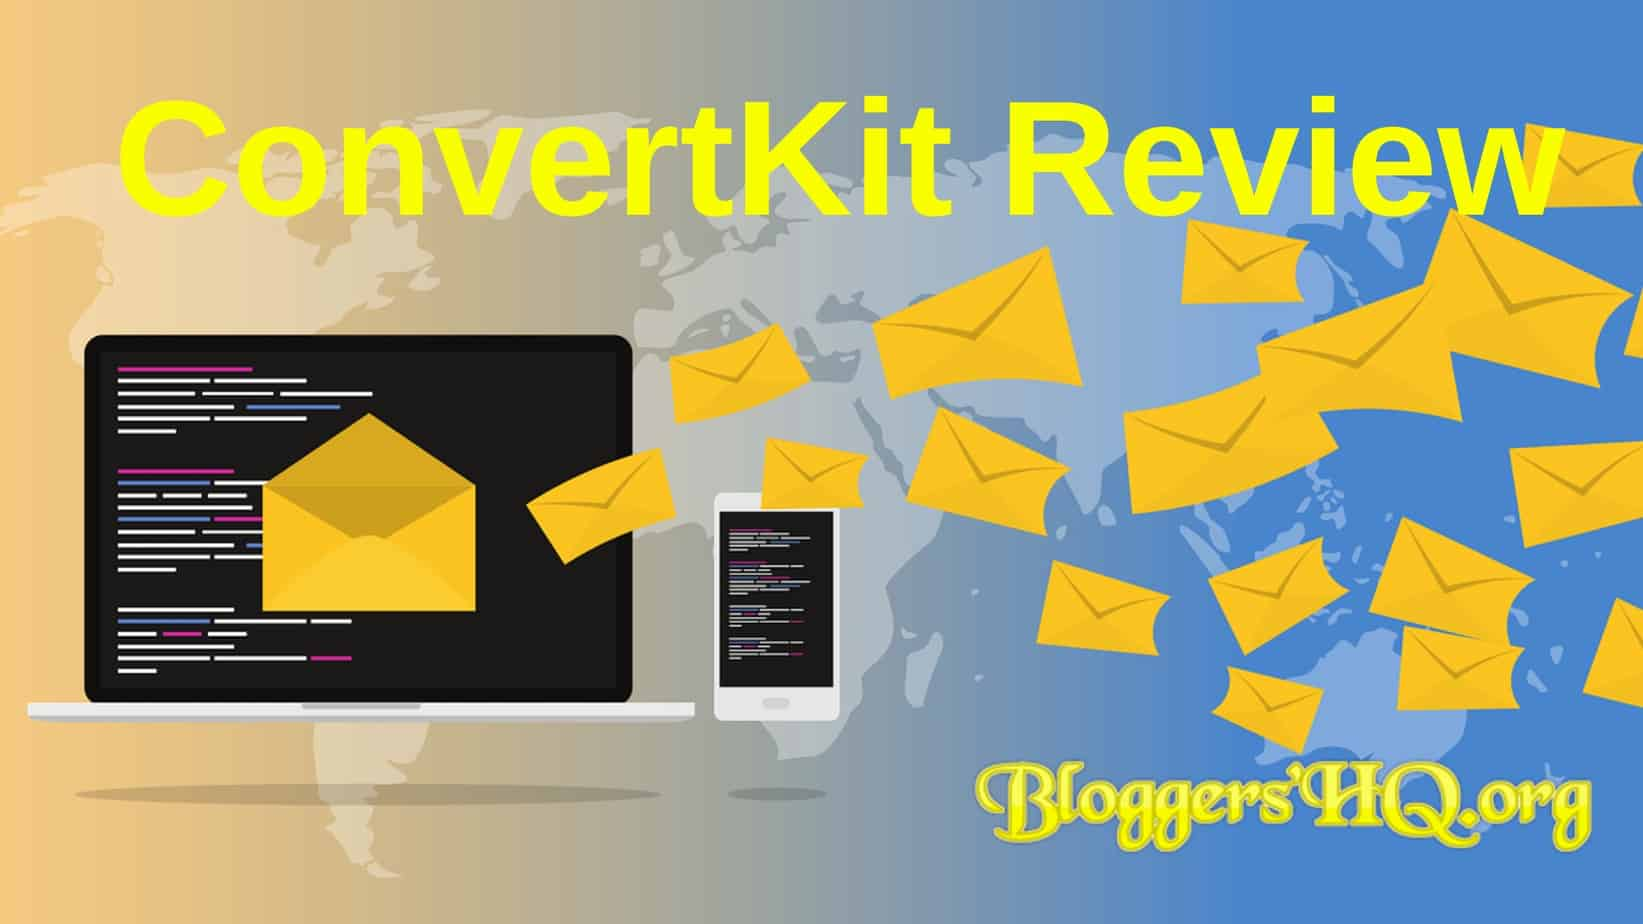 Convertkit Email Marketing 30 Off May 2020